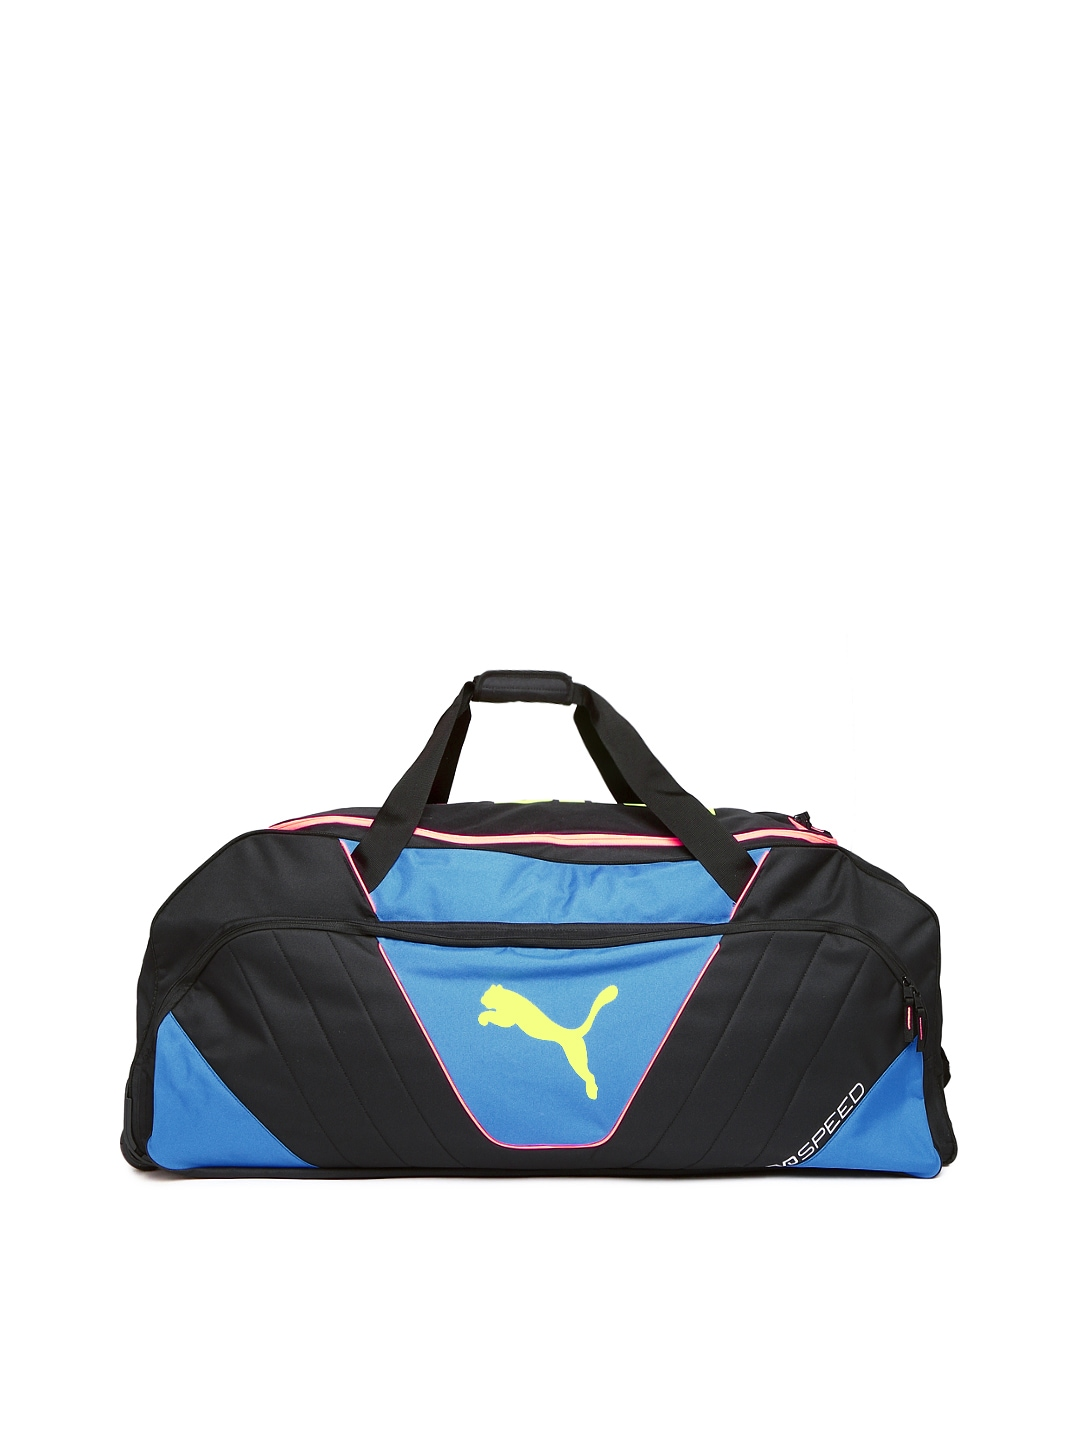 1d8c8b059f Puma Small Bags - Buy Puma Small Bags online in India